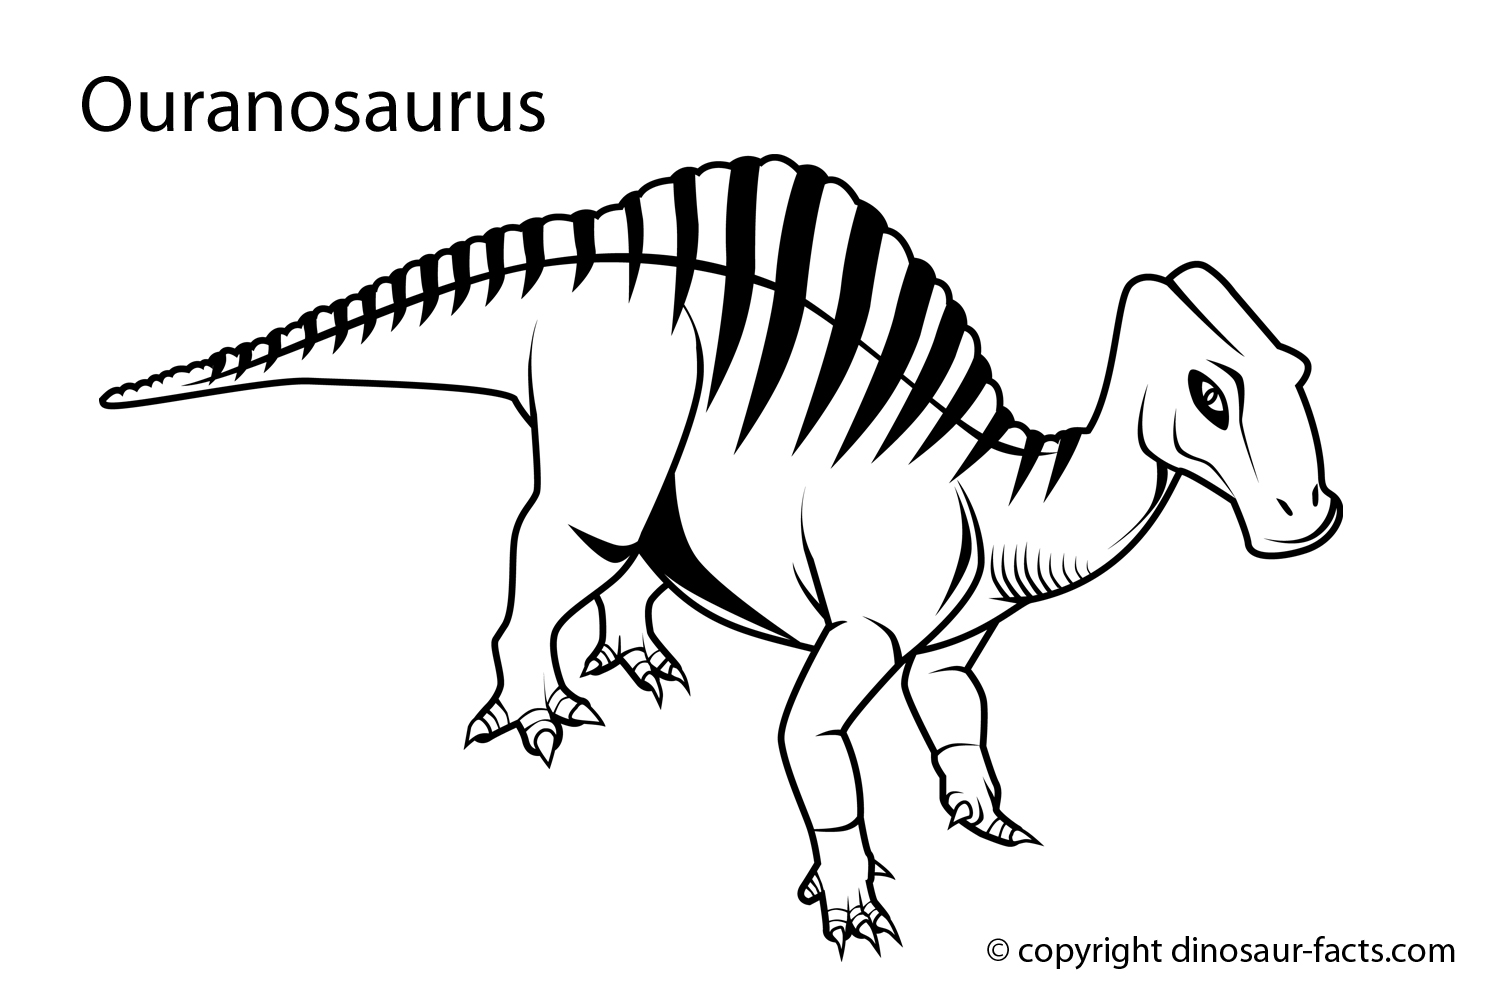 Dinosaur Coloring Pages 2018- Dr. Odd